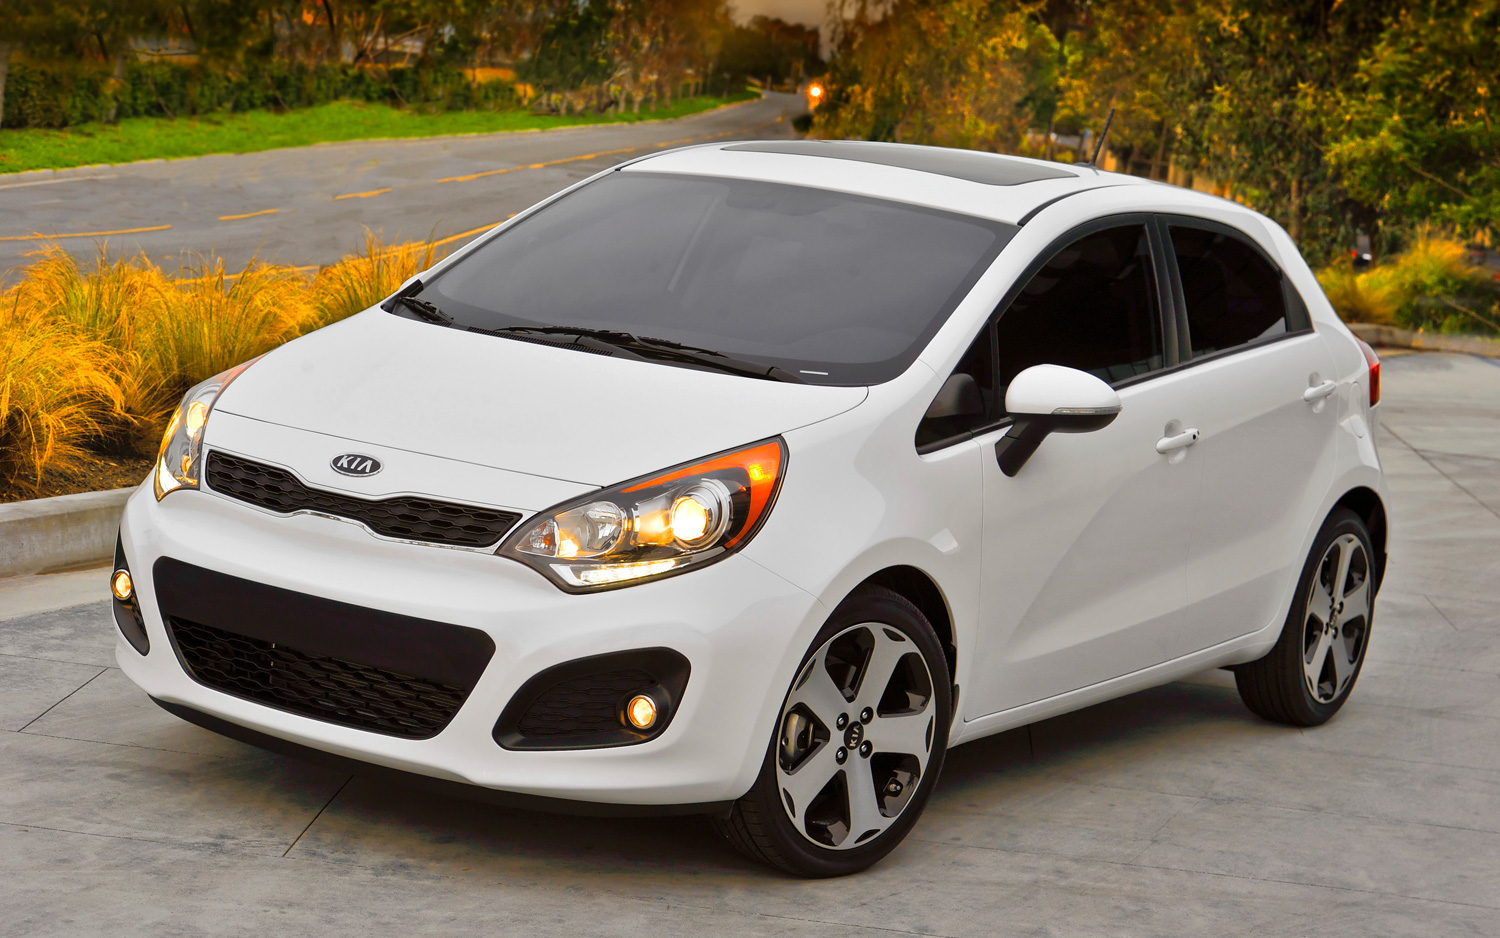 2013 kia rio sx hatchback to offer manual transmission motor trend rh motortrend com Kia Rio 5 2018 Kia Rio Interior